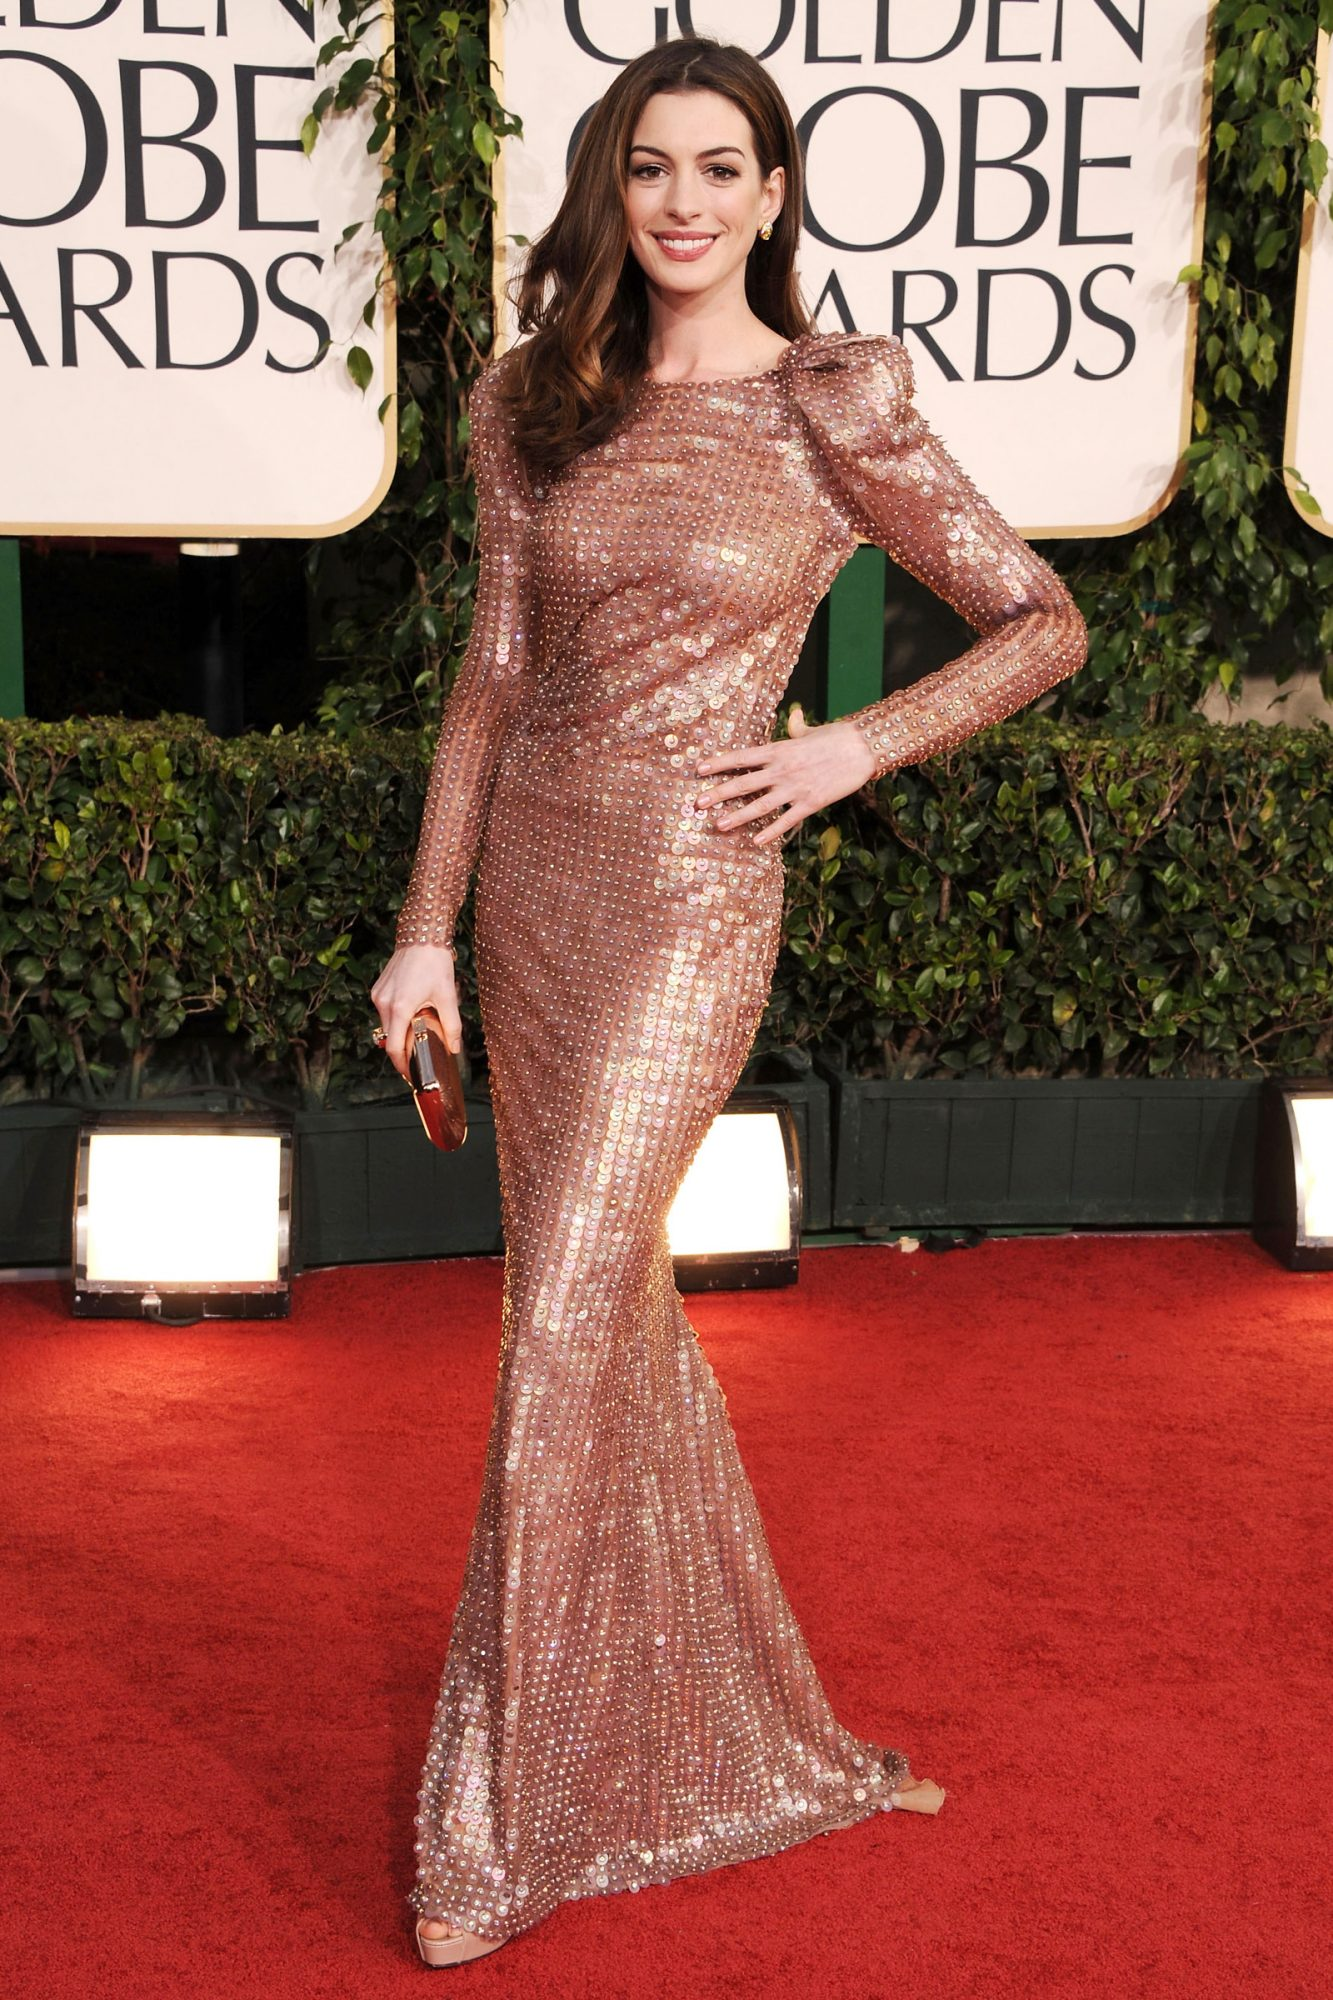 Anne Hathaway arrives at the 68th Annual Golden Globe Awards held at The Beverly Hilton hotel